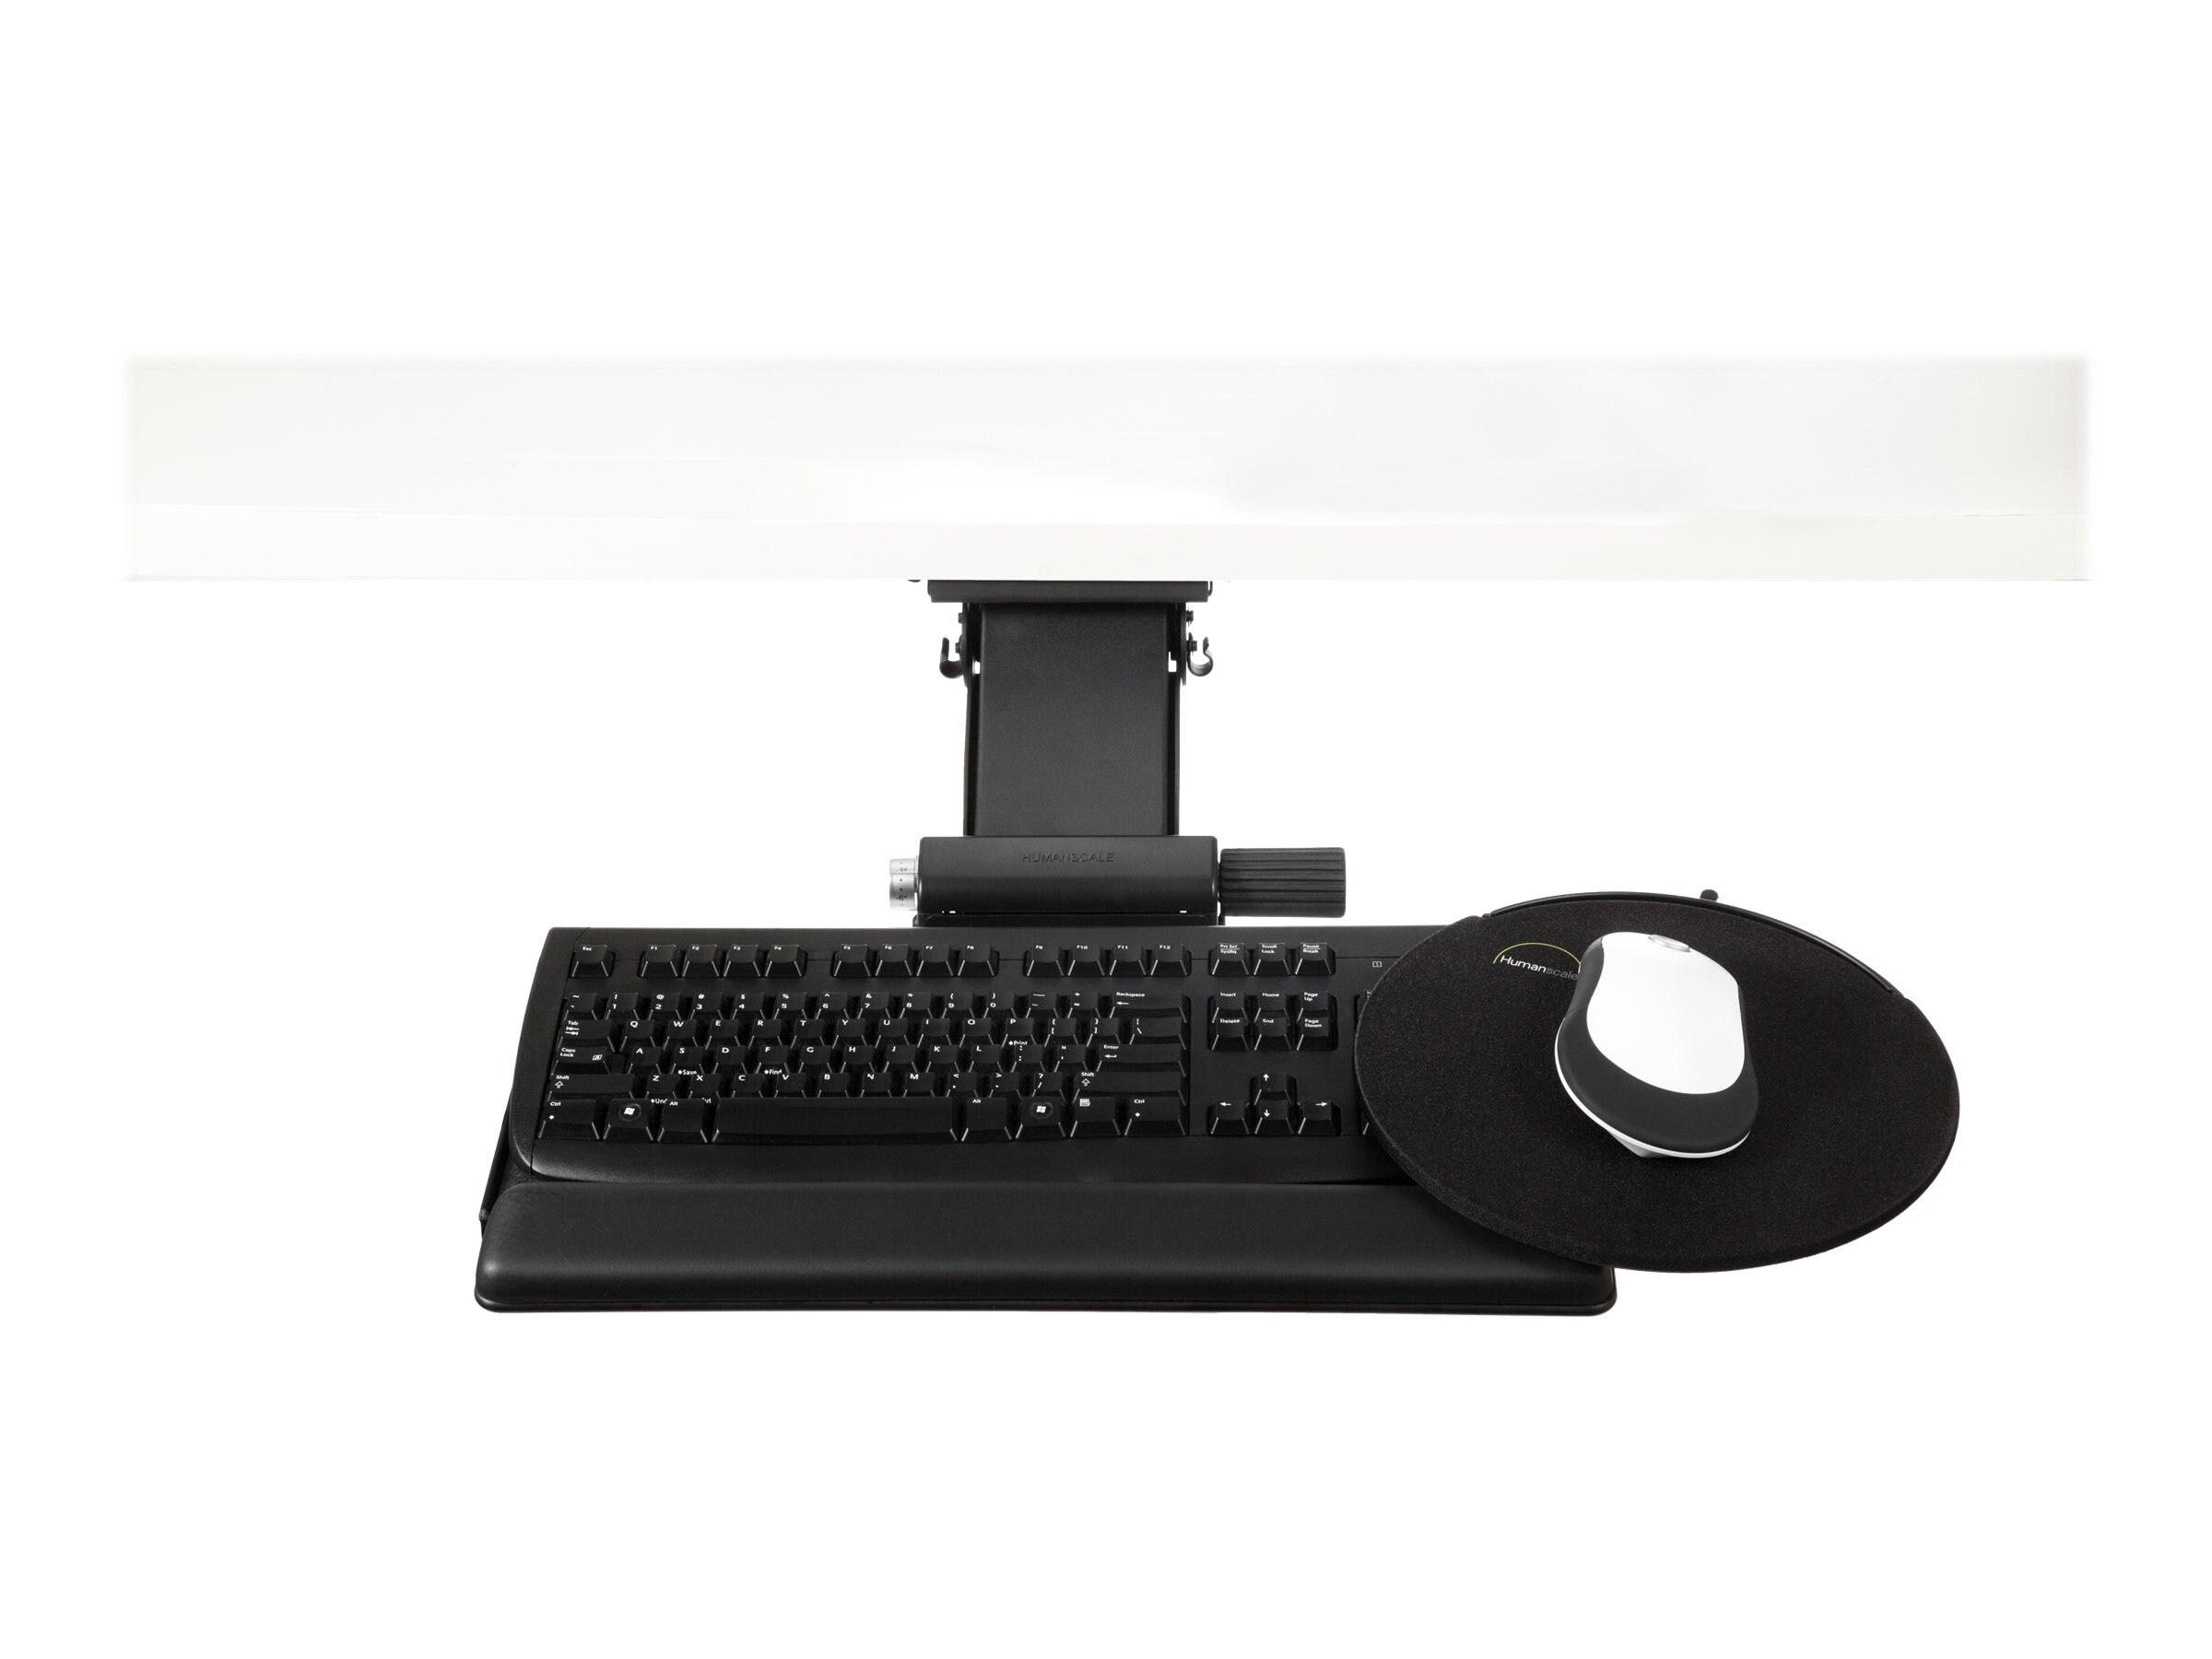 Humanscale 6G Keyboard Mechanism, 900 Keyboard Platform, 8.5 High Clip Mouse, 22 Track, 6G90090H, 16917770, Cart & Wall Station Accessories